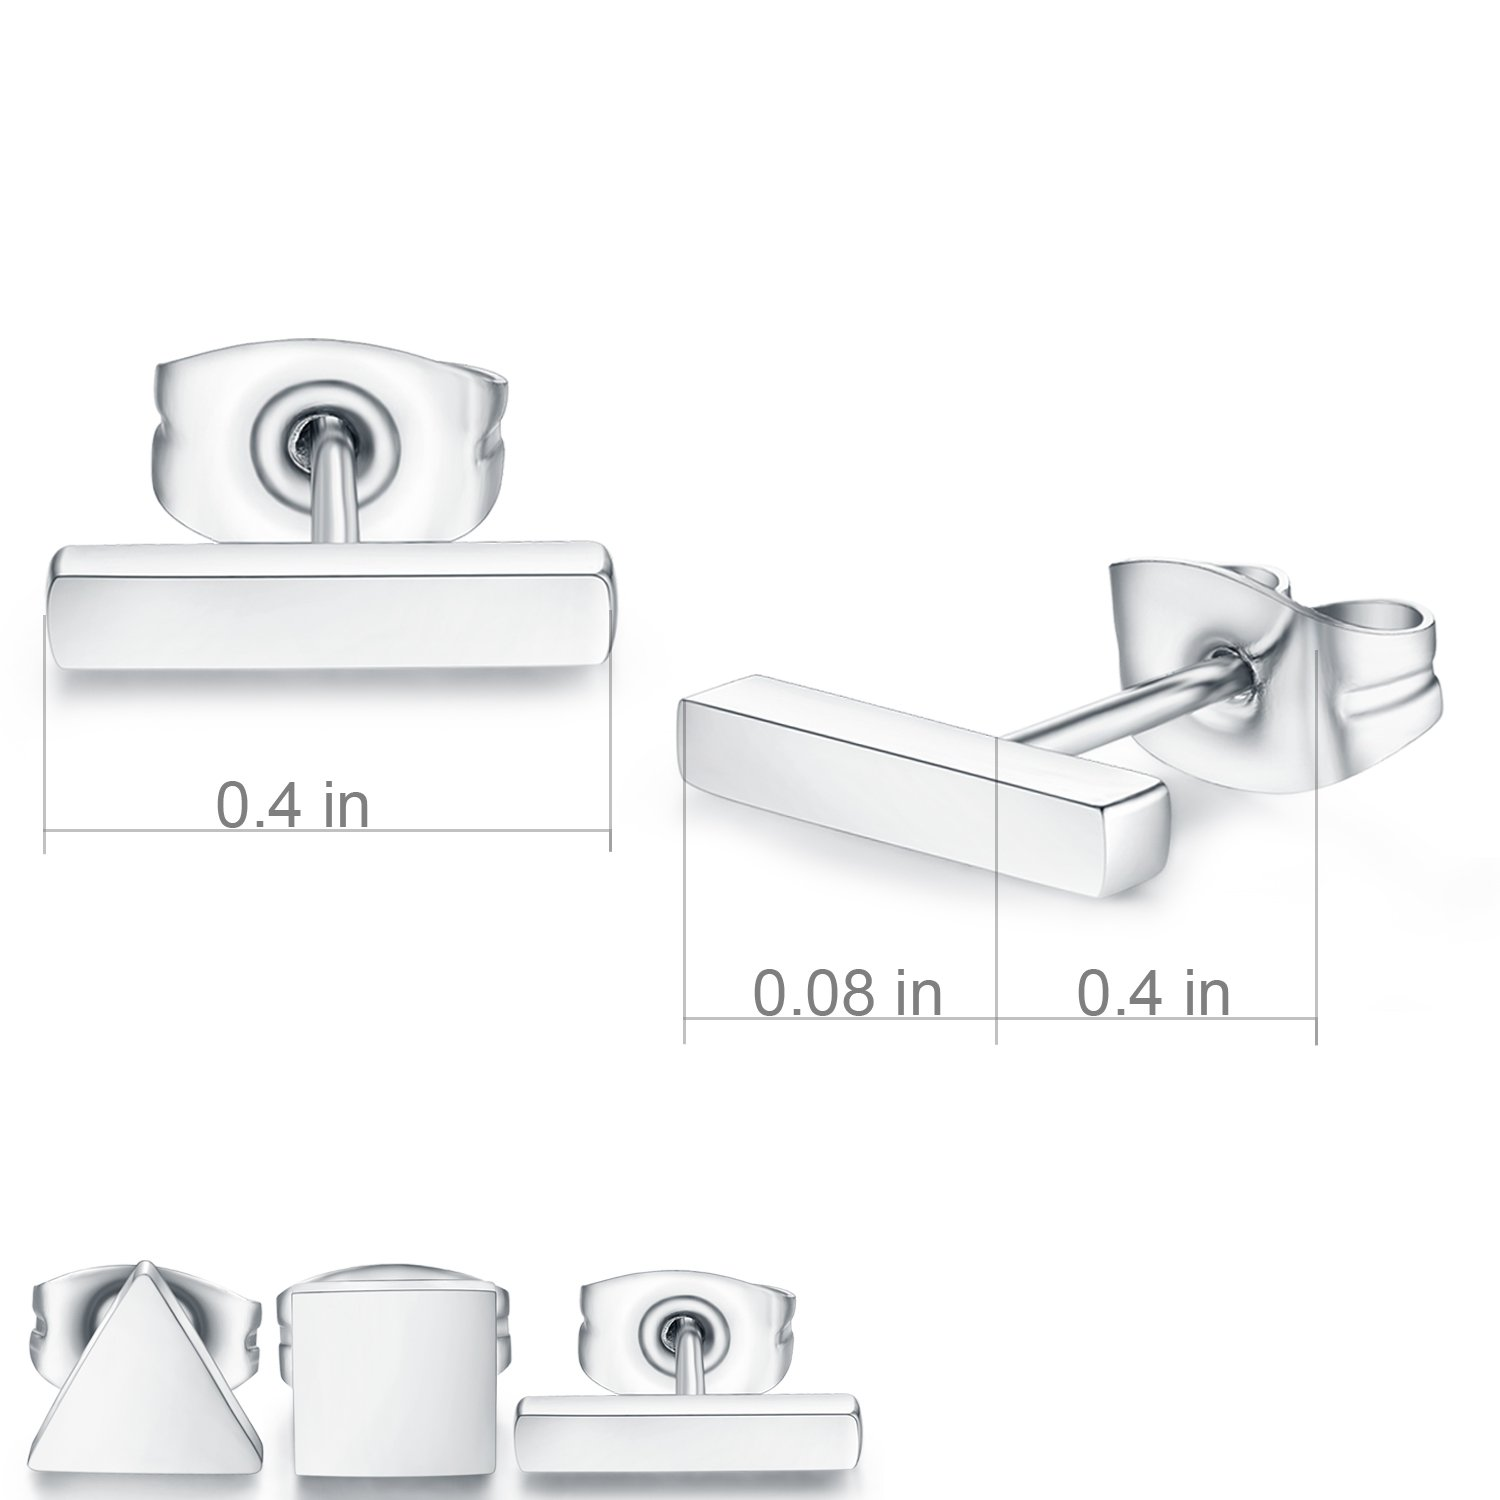 SPINEX 3 Pairs Silver Stud Earring Set Pierced (Rectangle, Square, Triangle) by SPINEX (Image #5)